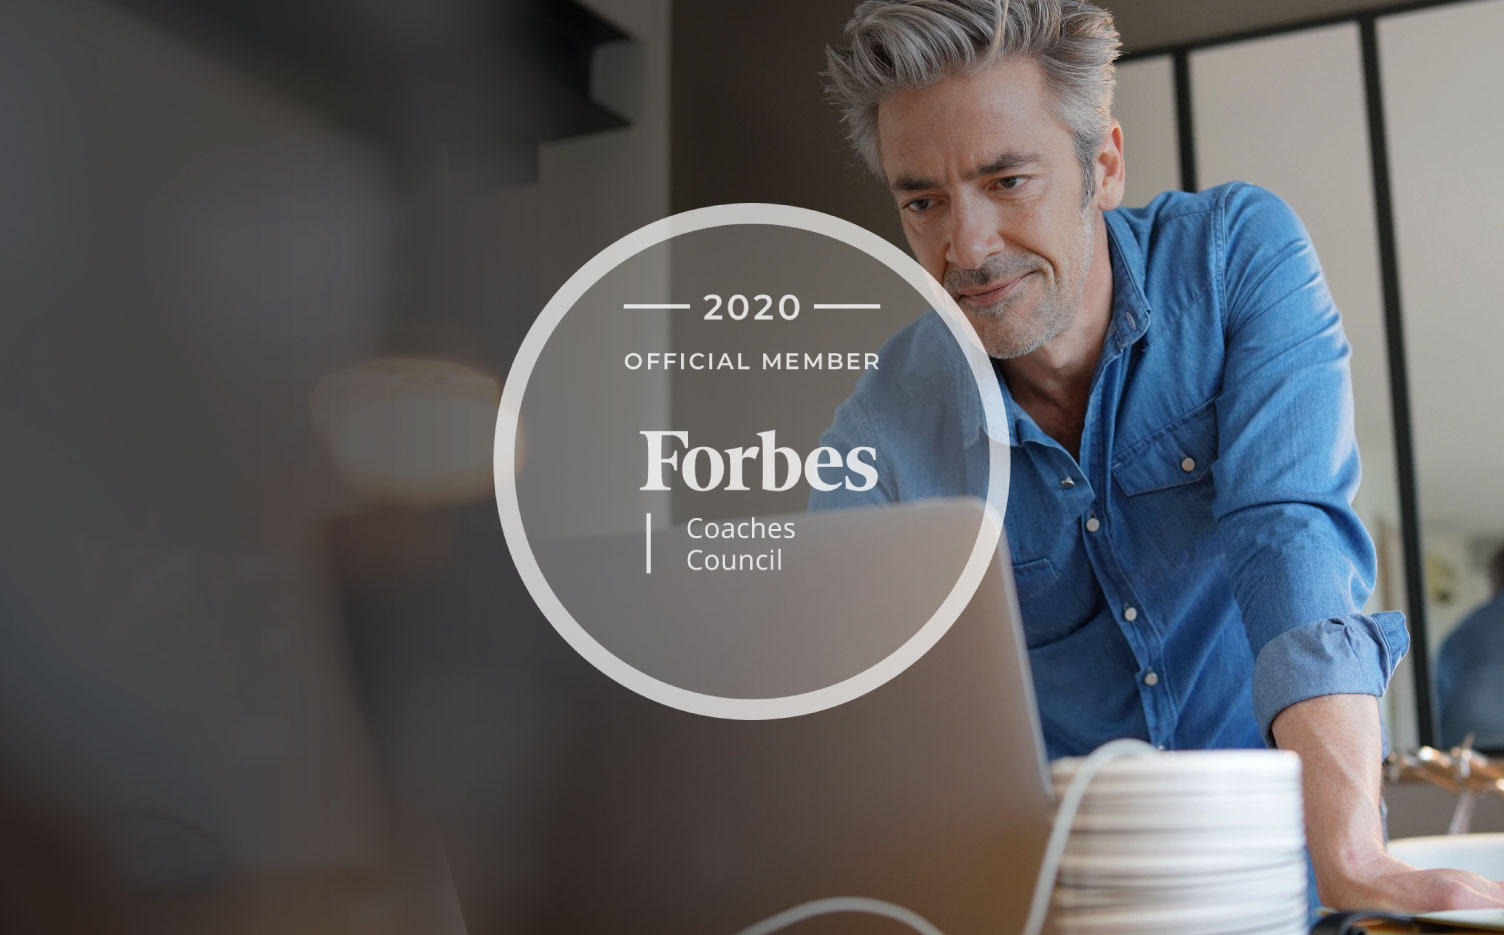 Jon Dwoskin Forbes Coaches Council Article: Adjusting To The New Workplace